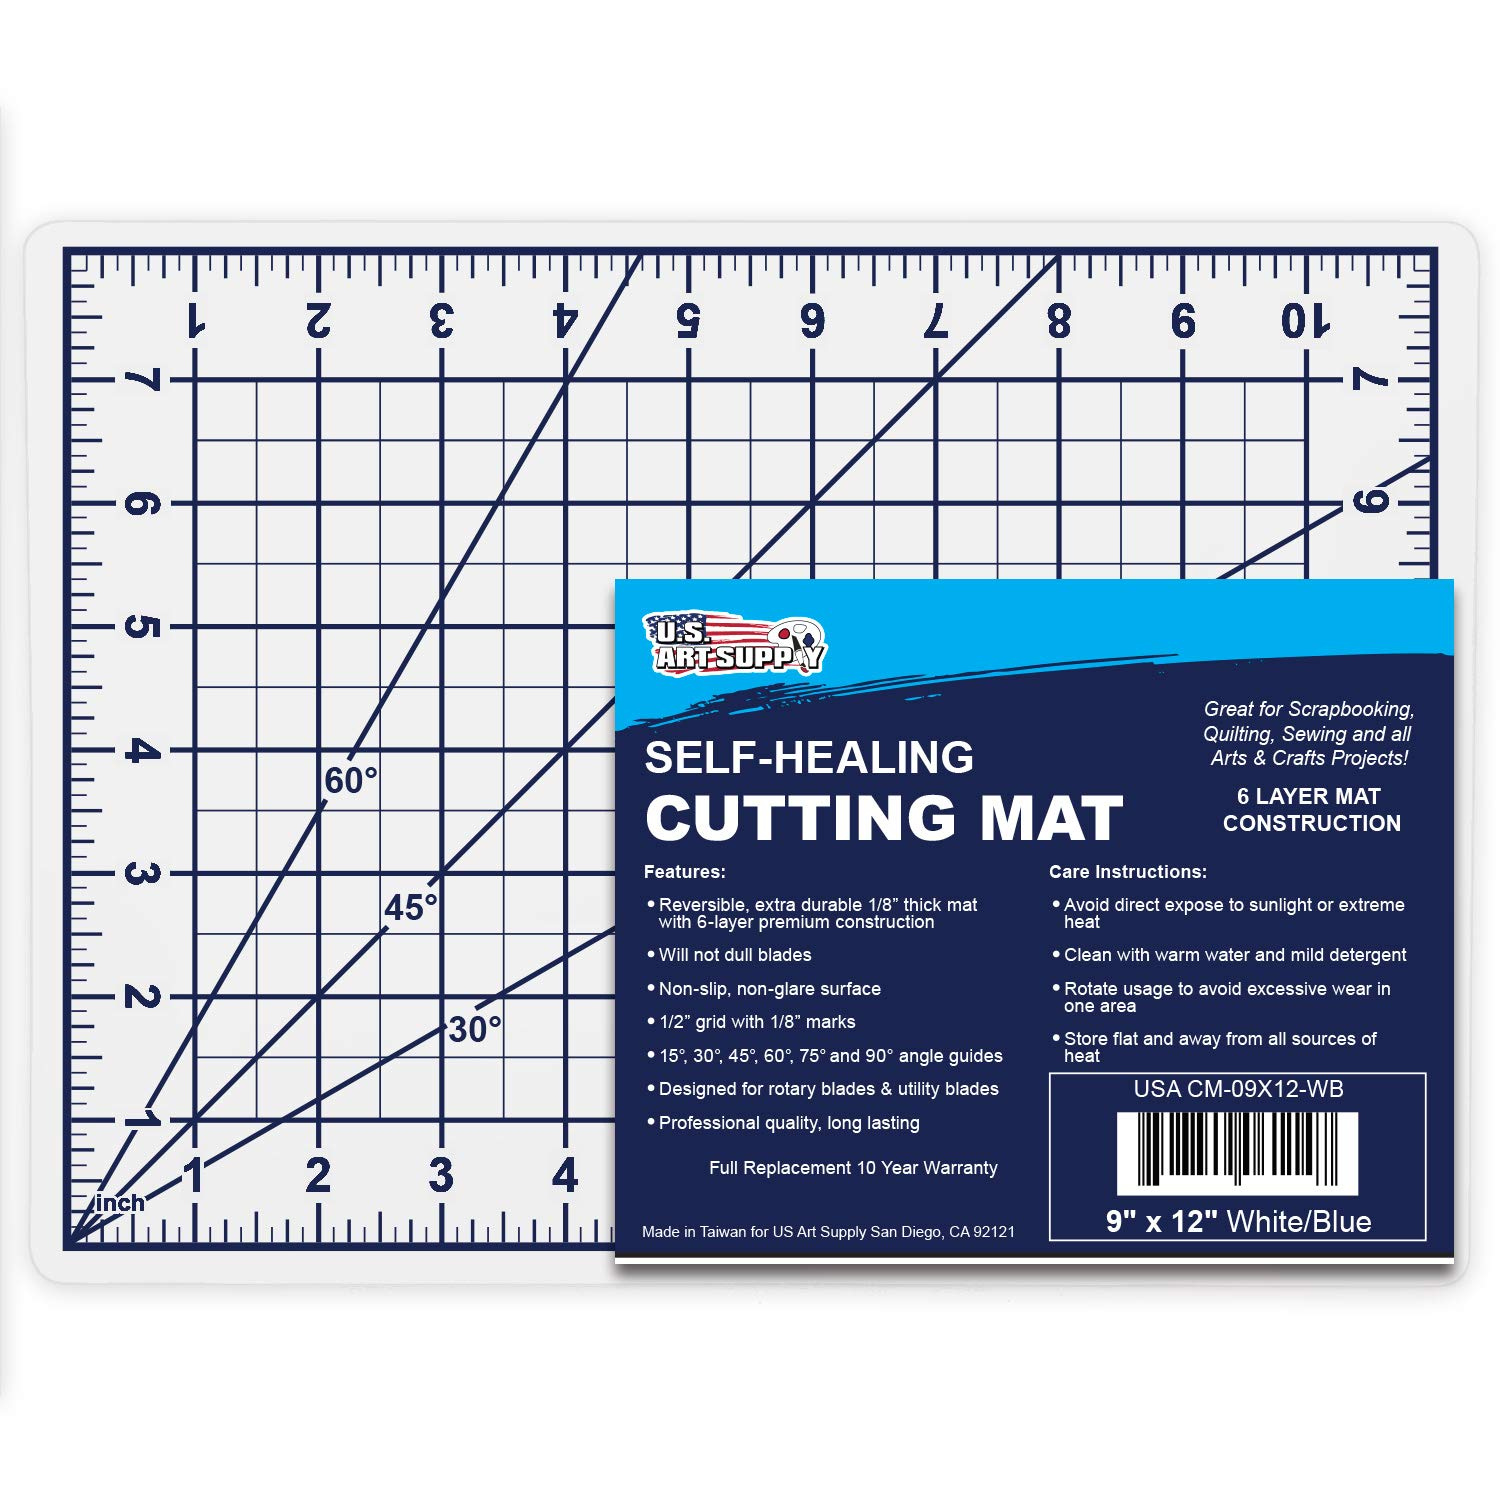 U.S. Art Supply 36' x 48' WHITE/BLUE High Contrast Professional Self Healing 6-Layer Double Sided Durable Non-Slip PVC Cutting Mat Great for Scrapbooking, Quilting, Sewing and all Arts & Crafts Projects